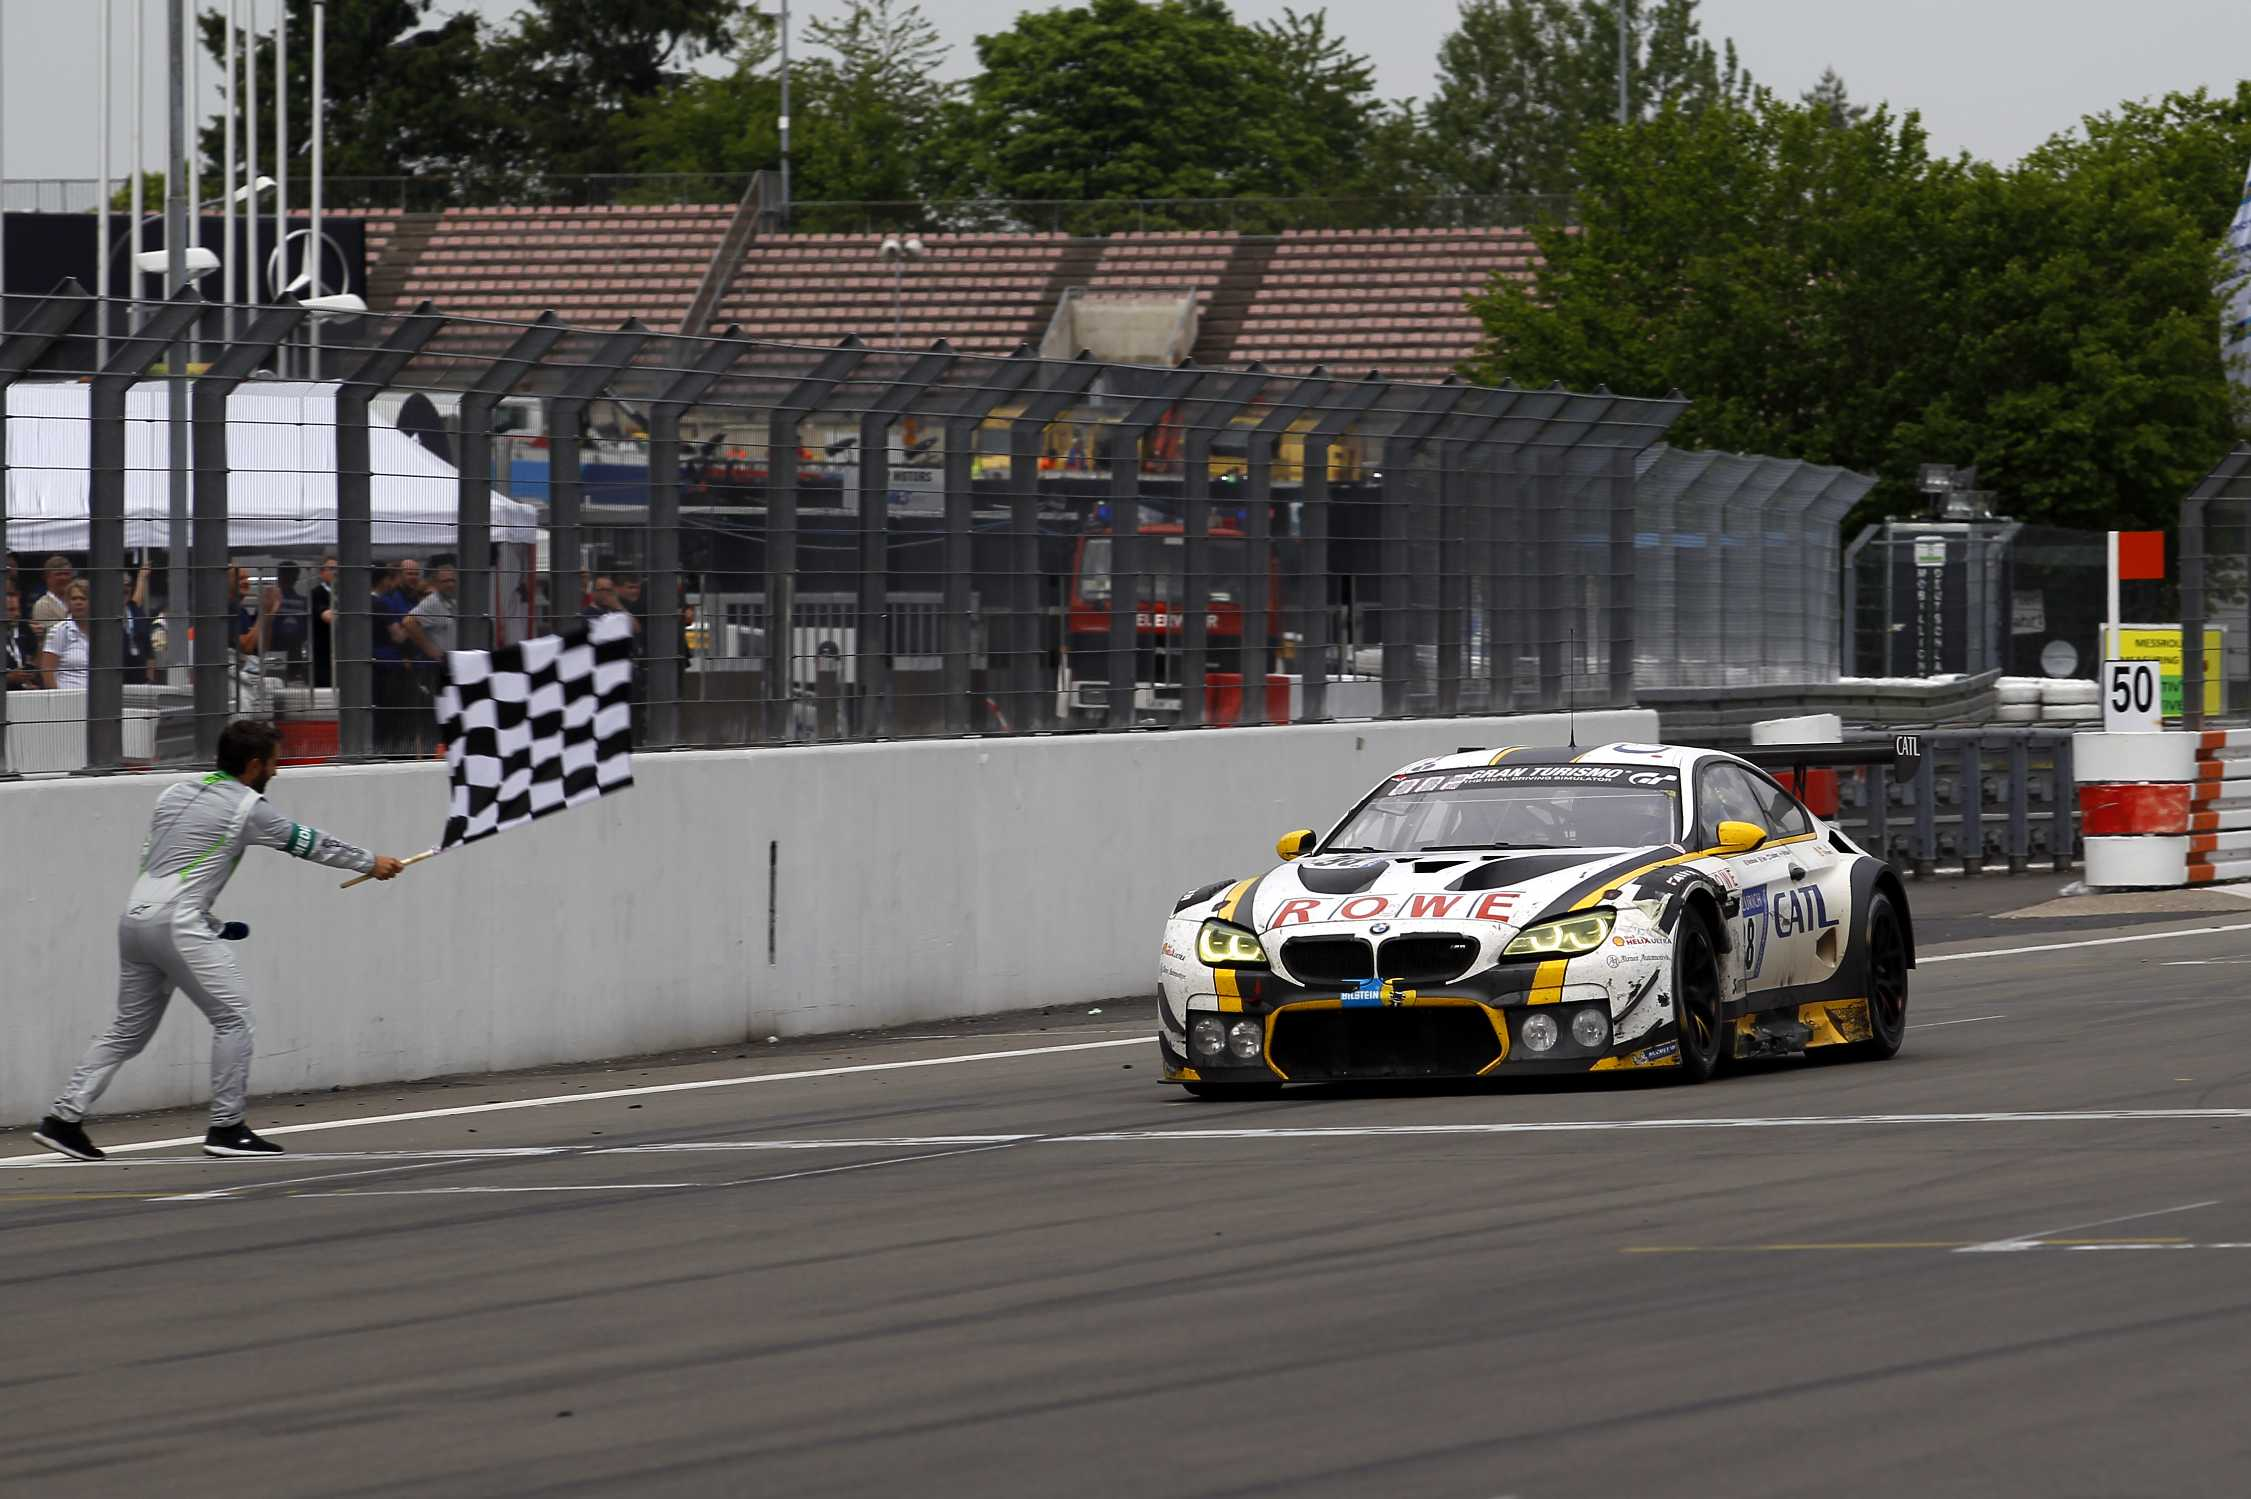 Dramatic 24-hour finale in the rain: ROWE Racing secures ...